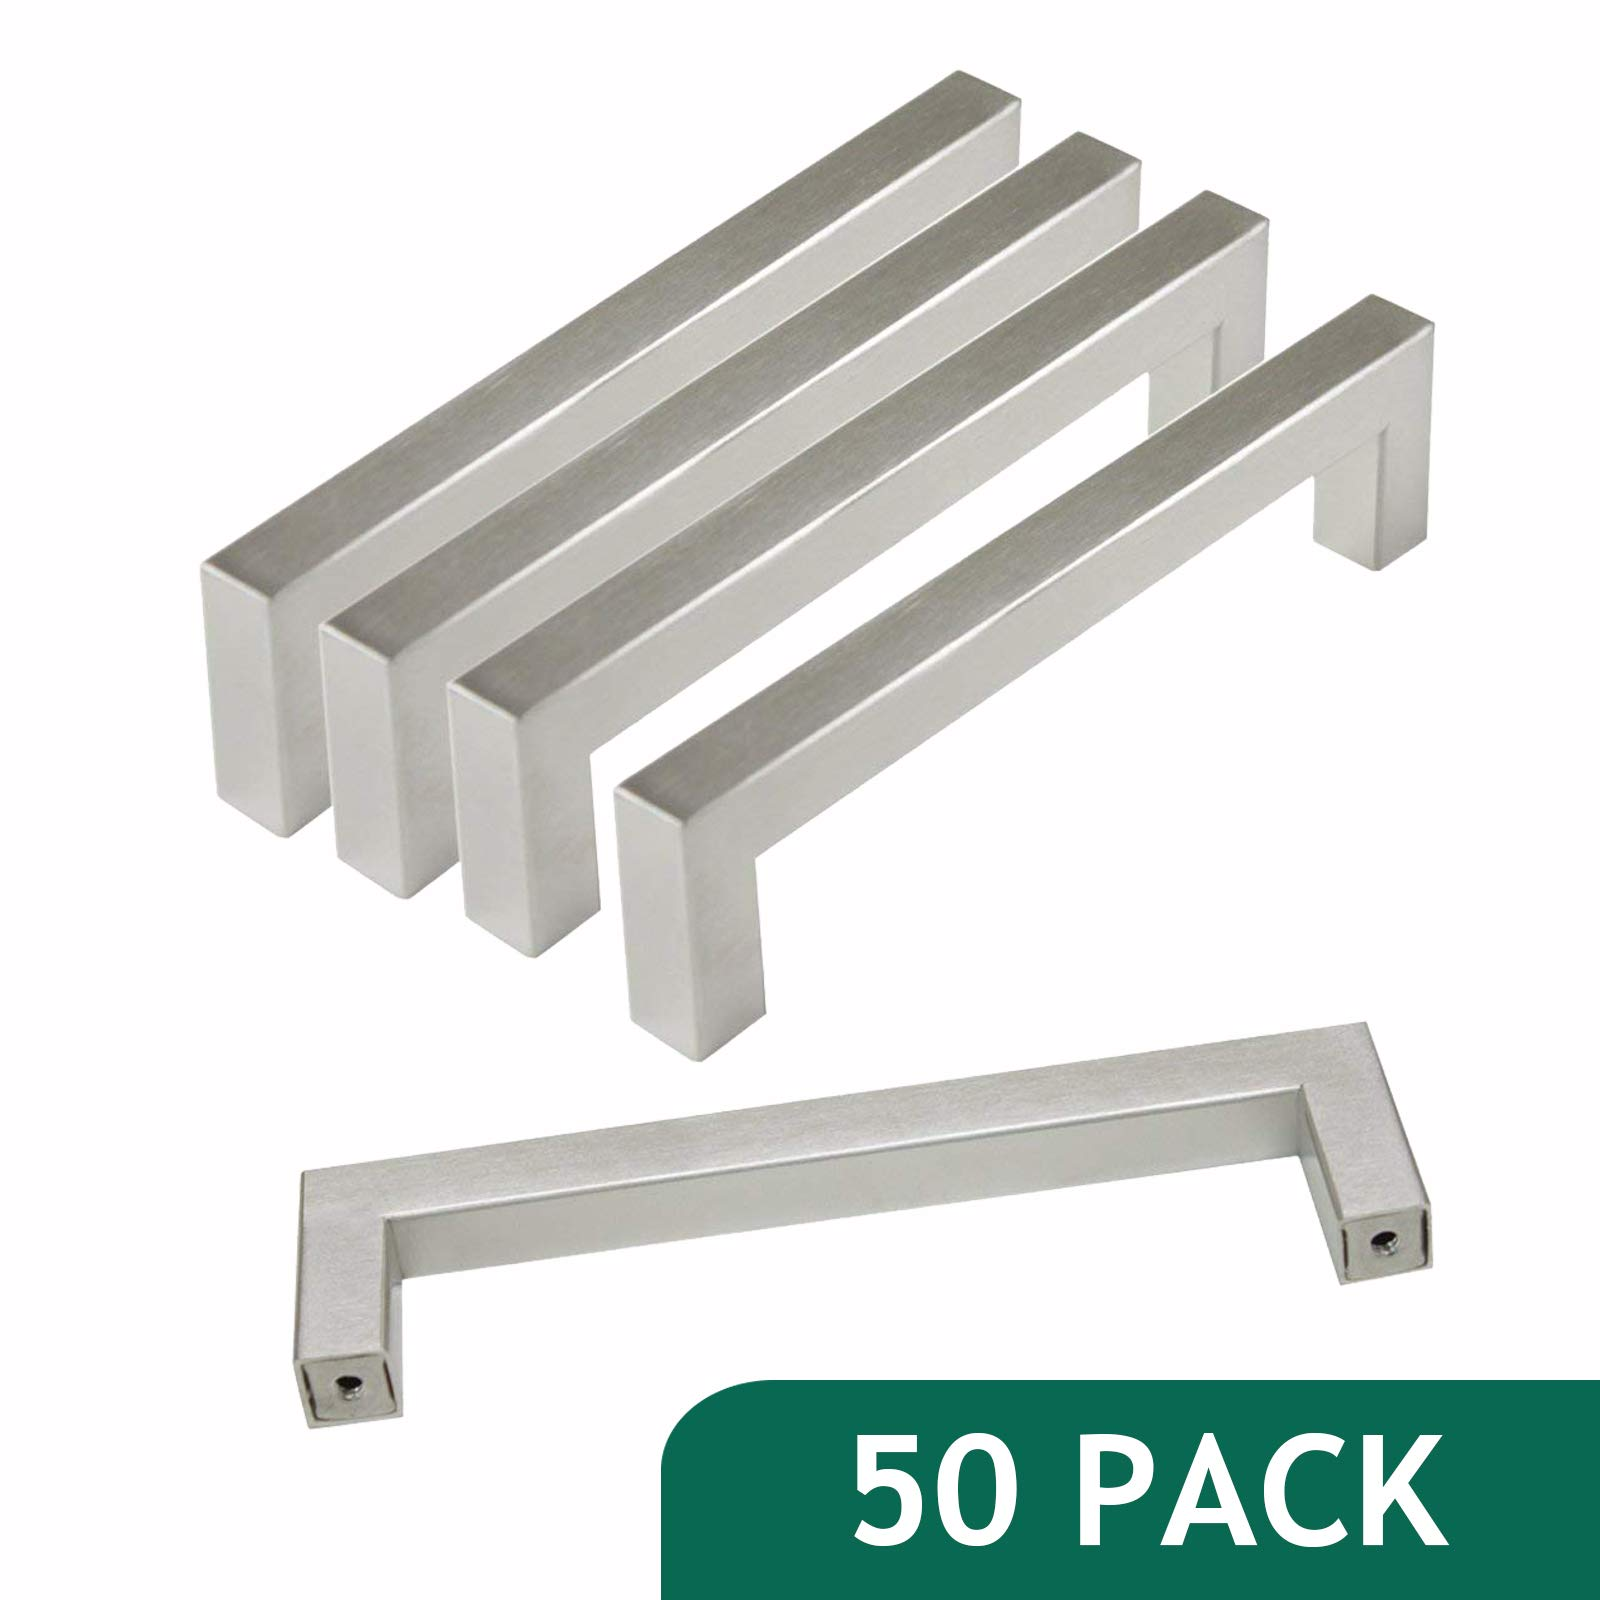 50 Pack-Probrico Stainless Steel Kitchen Cabinet Square Handles Brushed Nickel 5 in Holes Centers, 5.5 in Total Length